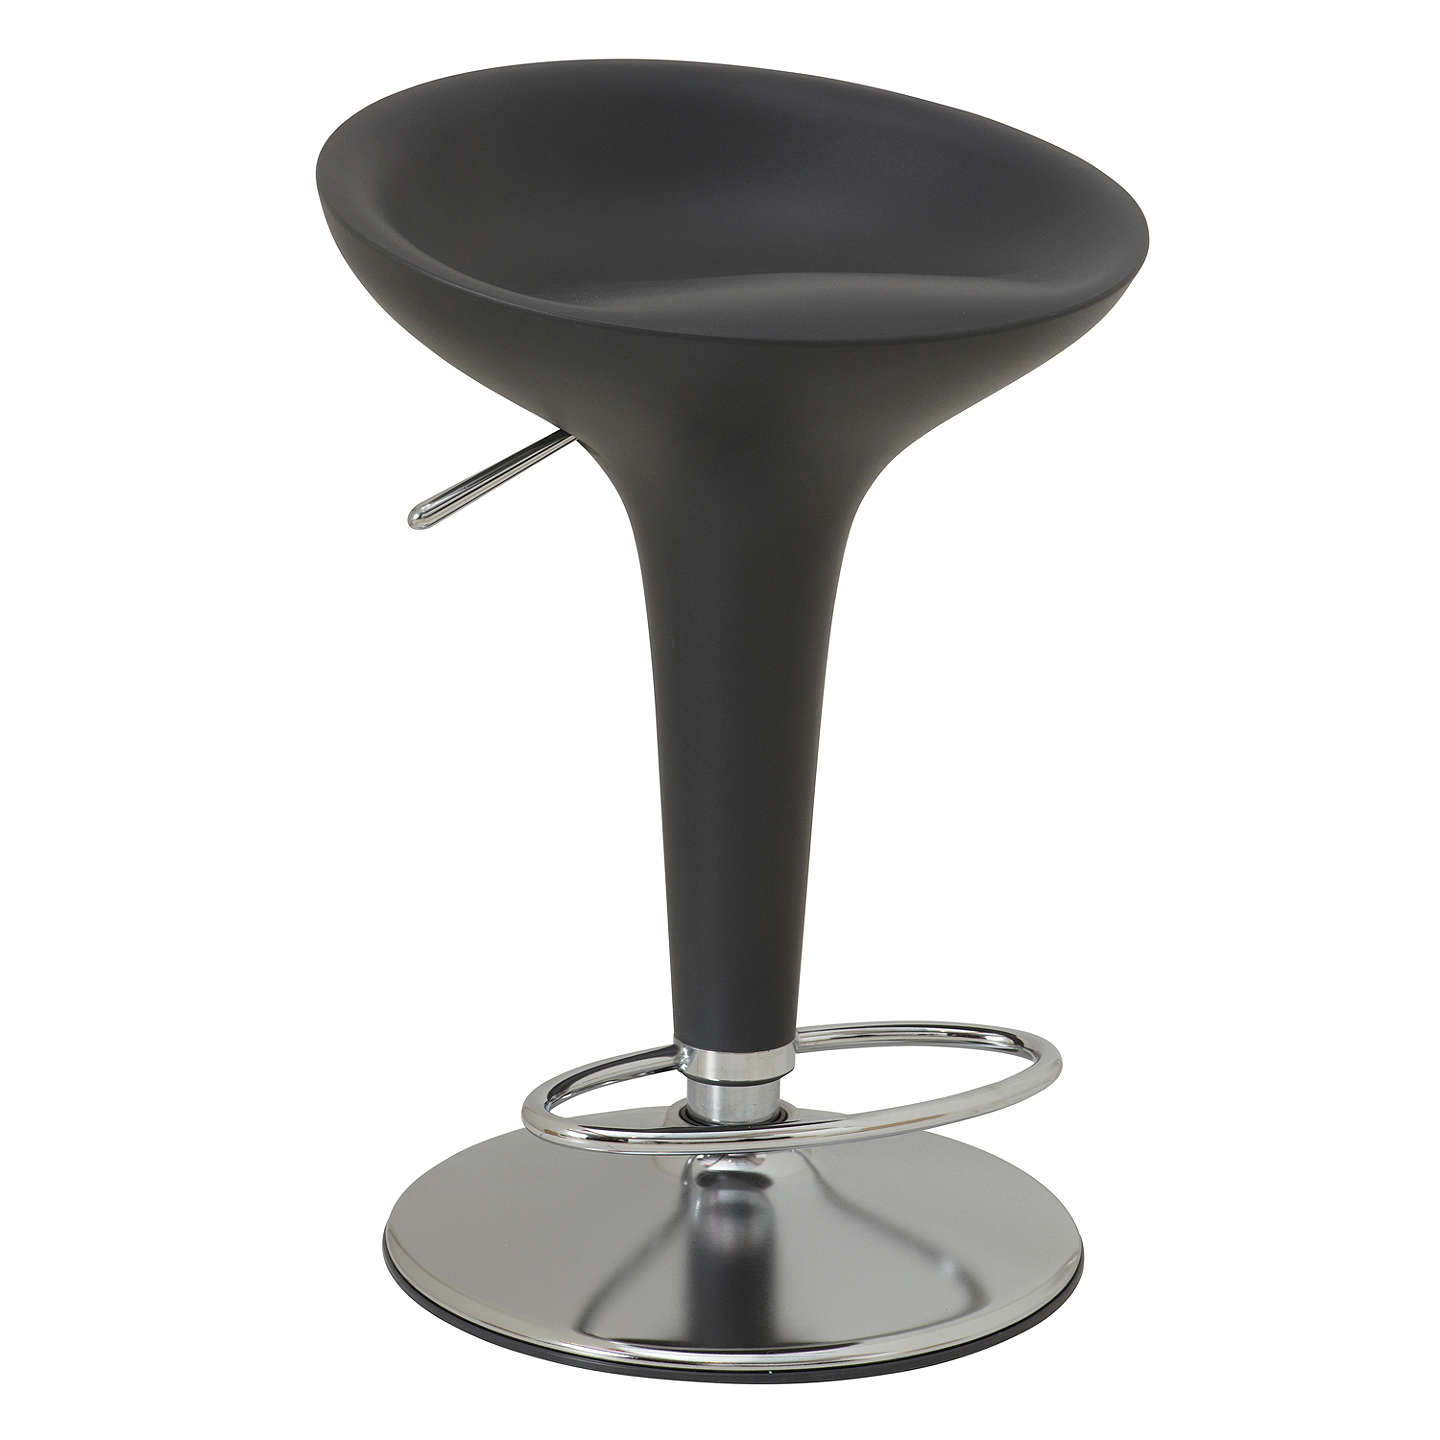 Offer: Magis Bombo Bar Stool | Graphite at John Lewis